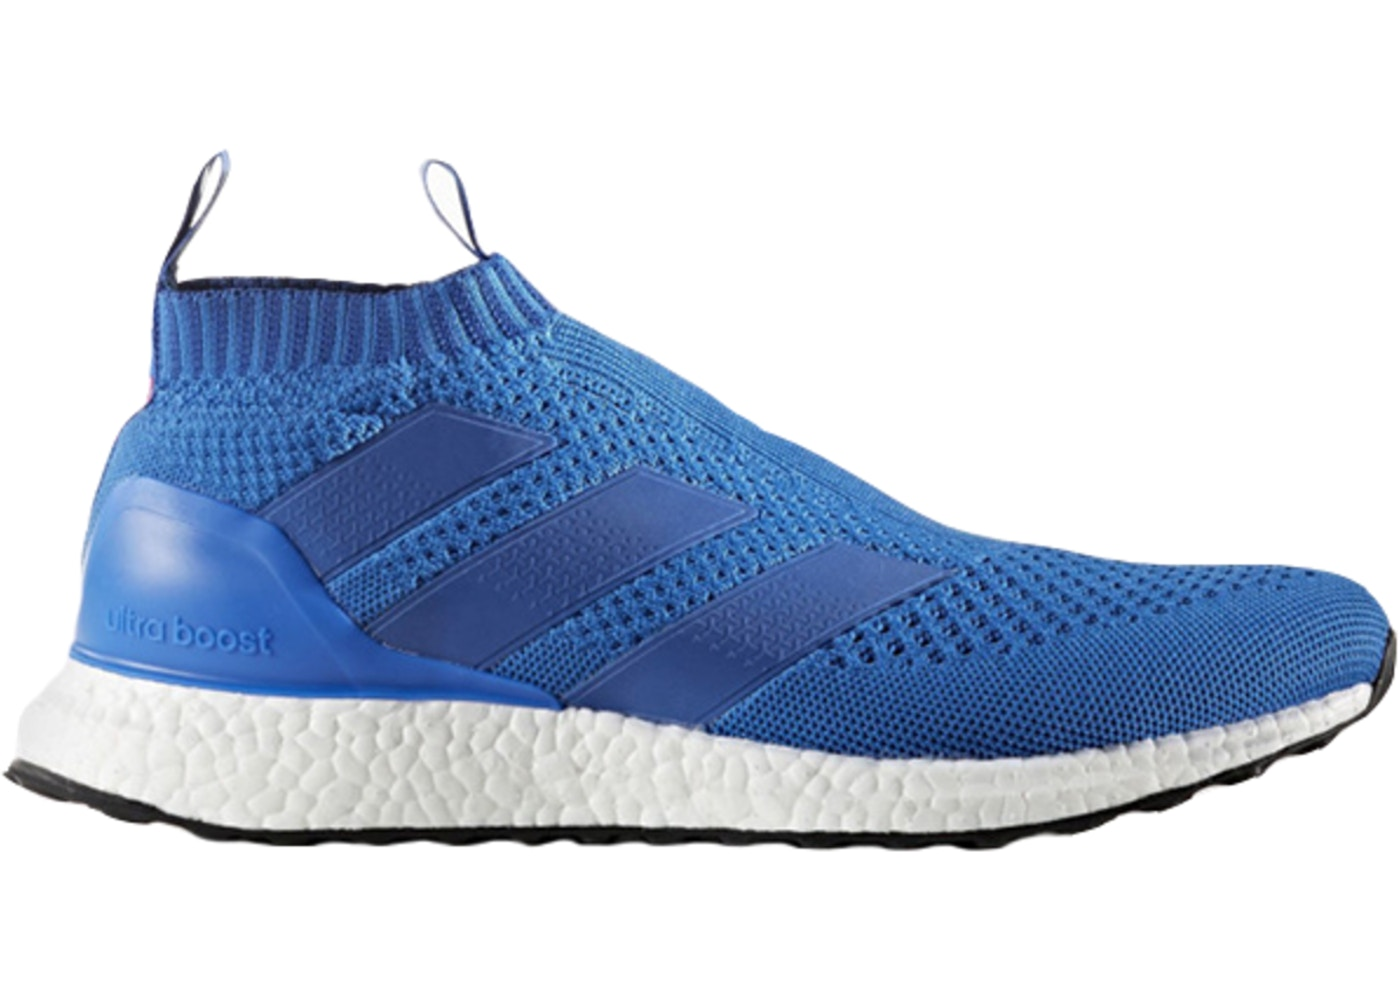 1062cb70009b3 adidas PureControl Ultra Boost Blue Blast - BY9090